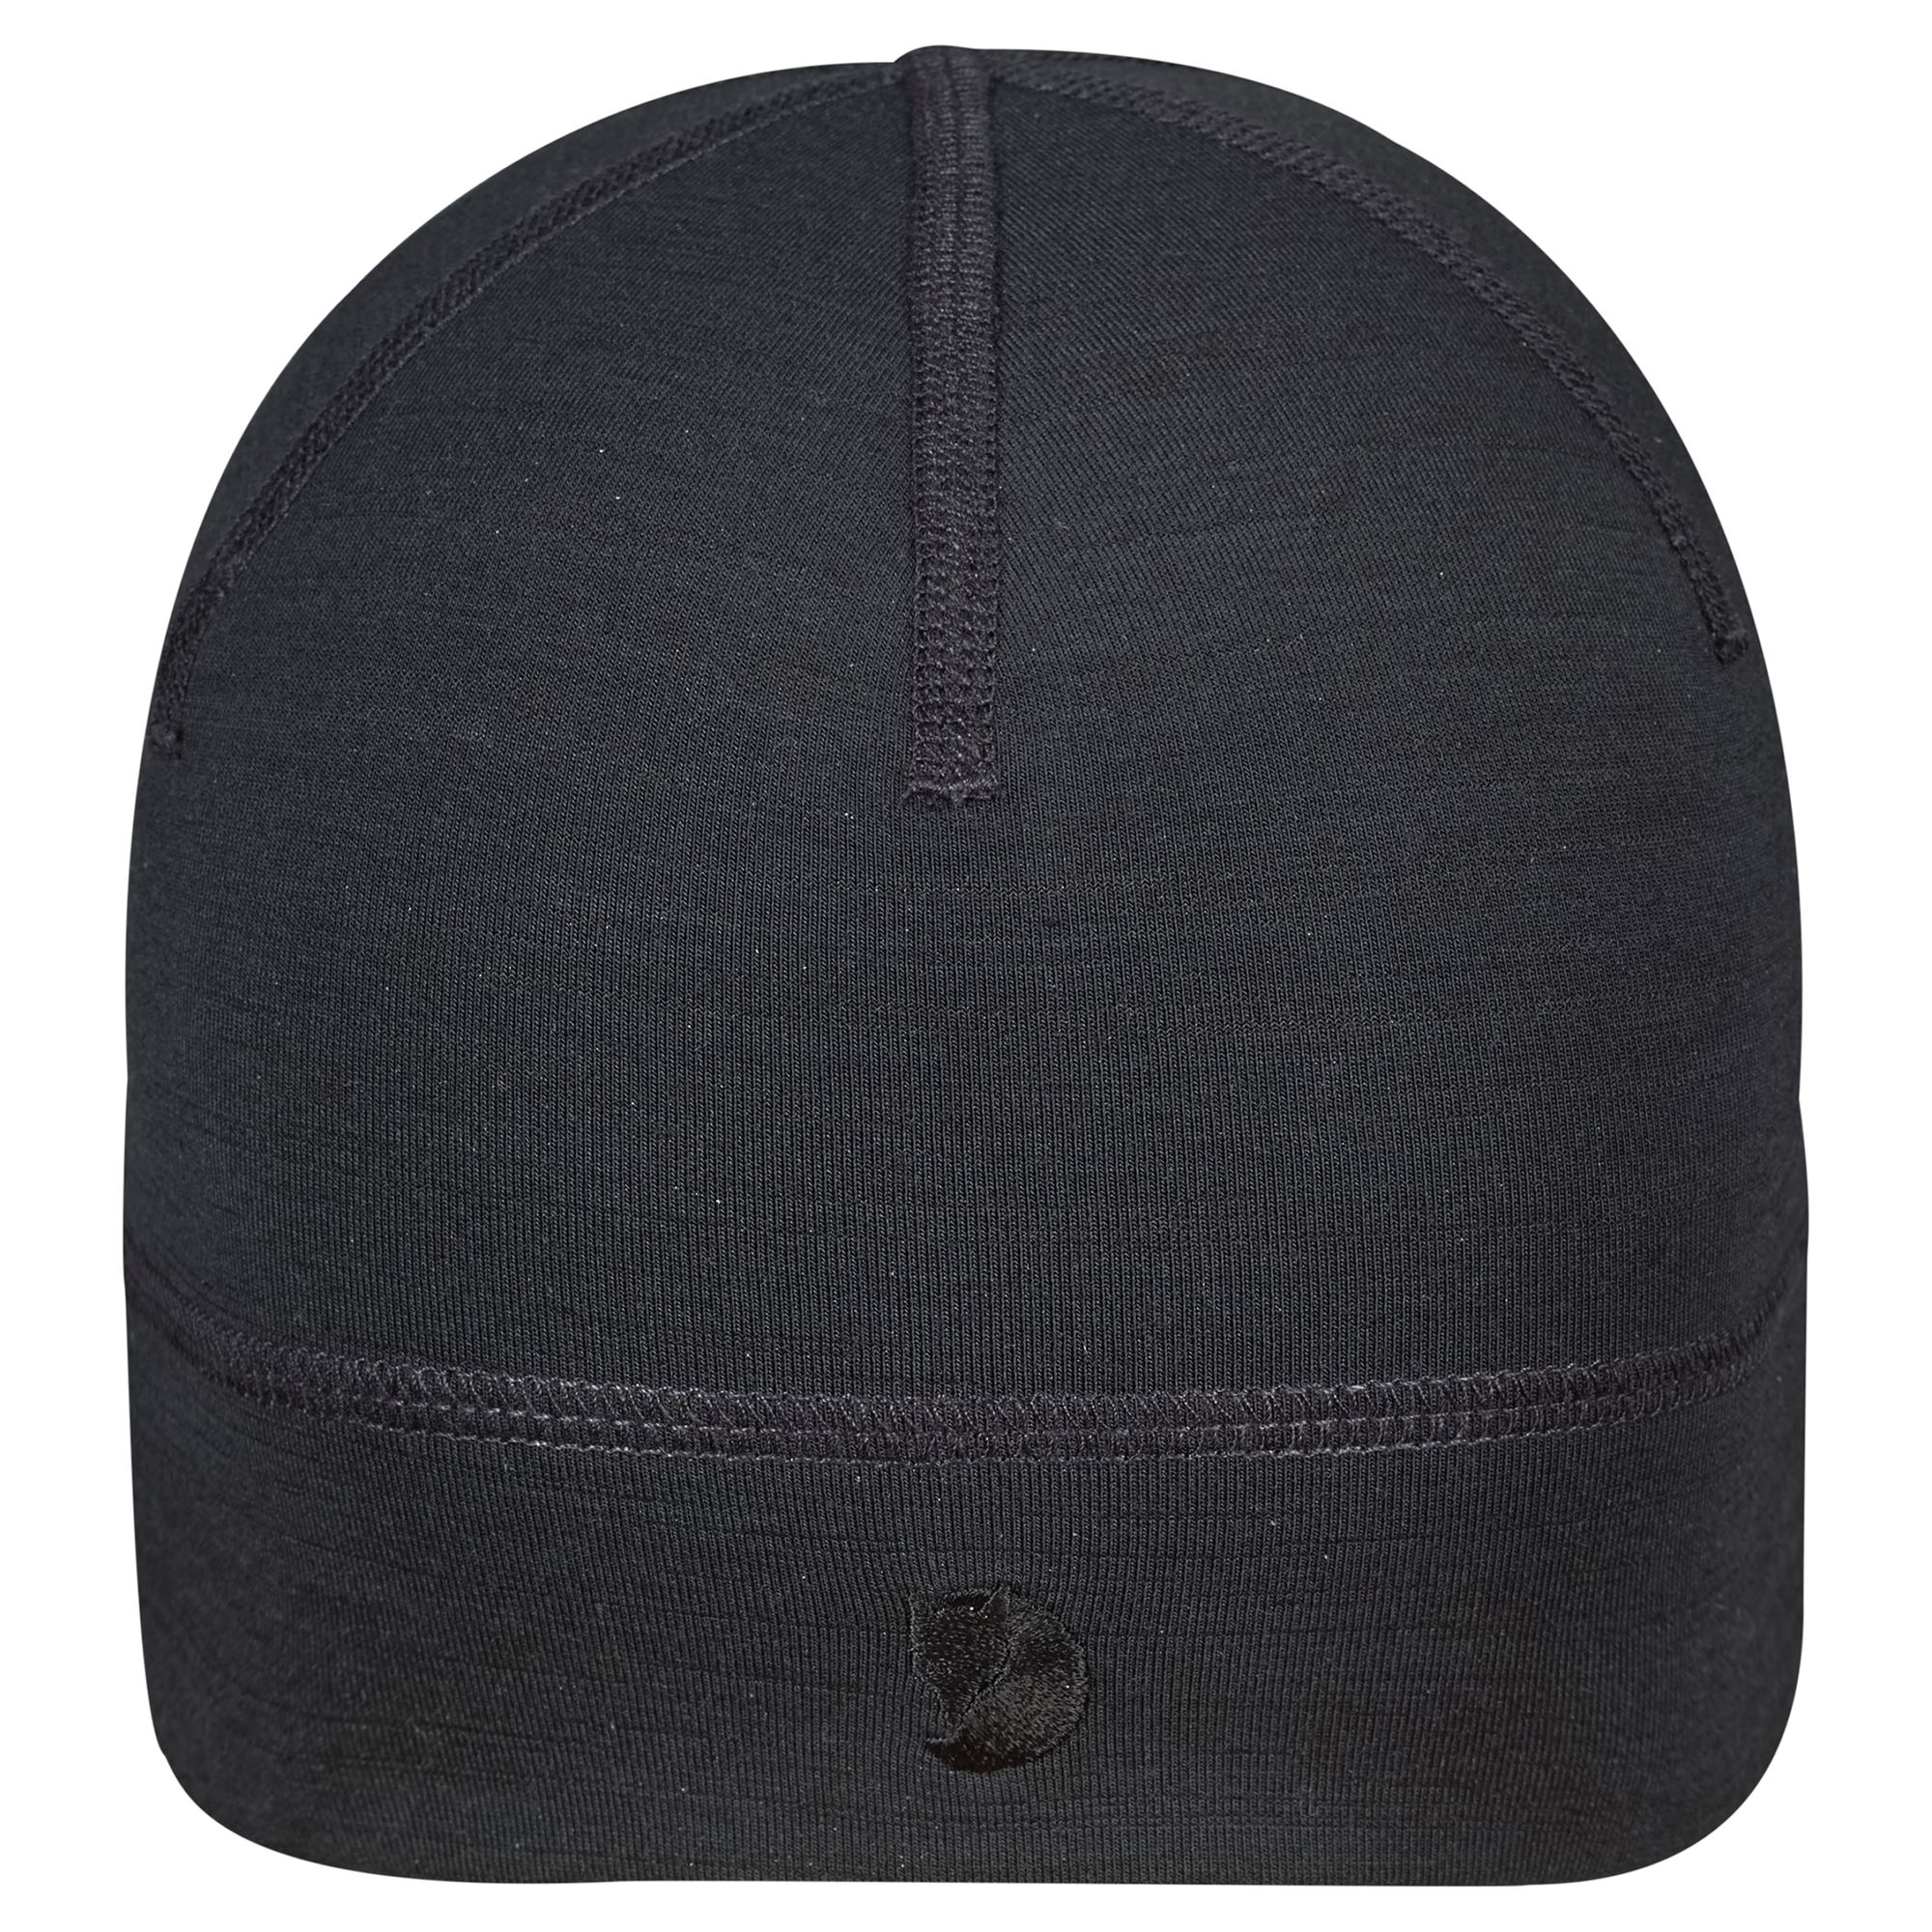 Fjllrven Keb Fleece hat dark greyjpg